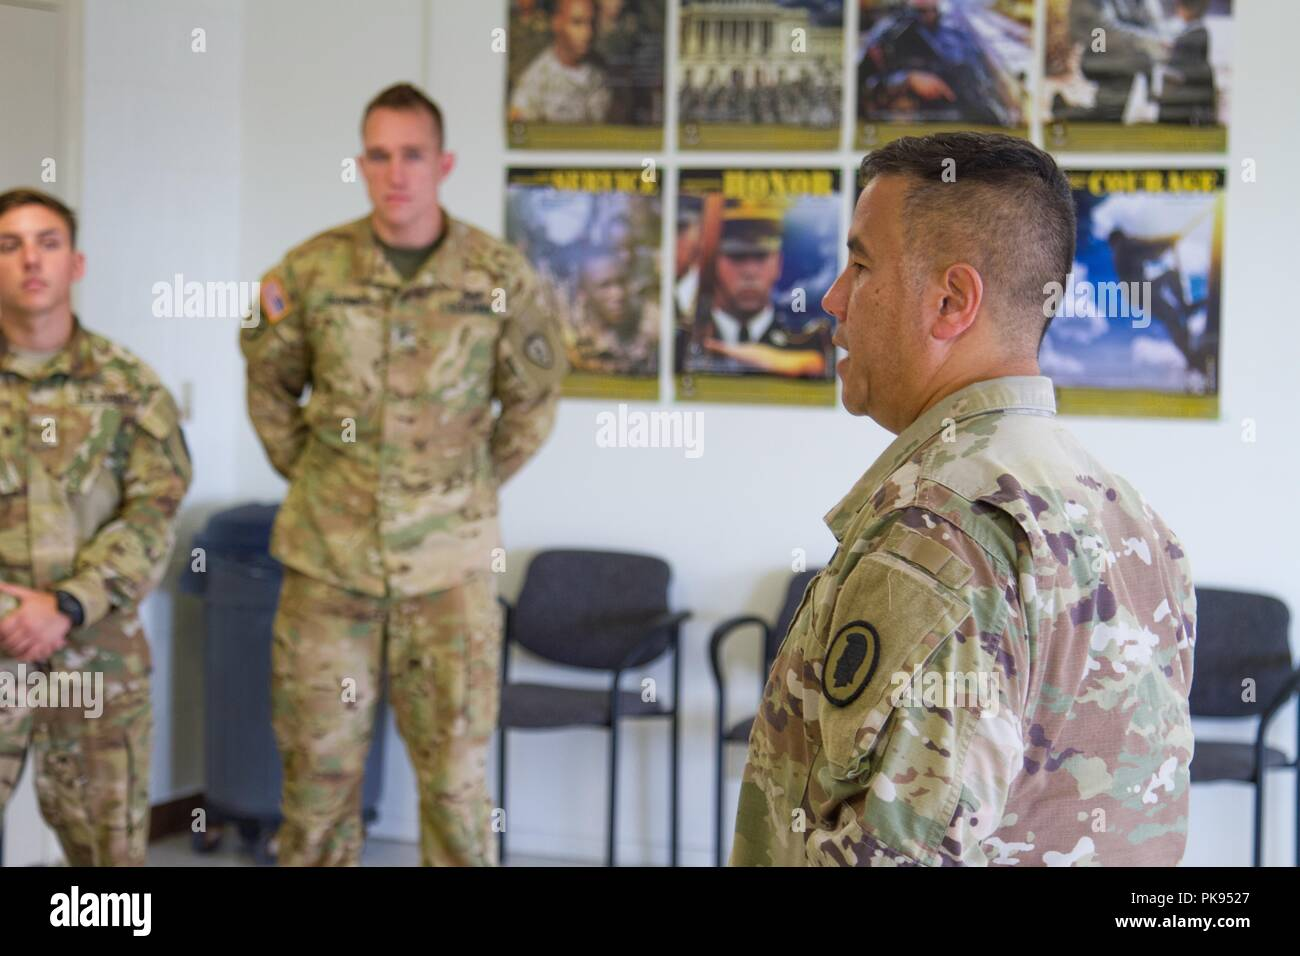 Brig. Gen. Kenneth Hara, Deputy Adjutant General, Hawaii Army National Guard and Joint Task Force 5-0 commander, lands at Hilo International Airport, Hilo, Hawaii, to conduct briefings to Hawaii National Guard and Active Duty Soldiers responding to Hurricane Lane on Aug. 27, 2018, August 27, 2018. Local authorities and the state of Hawaii, through JTF 5-0, requested HH-60M Black Hawk helicopters with hoist capability to assist local authorities with recovery operations on the Isle of Hawaii. JTF 5-0 is a joint task force led by a dual status commander that is established to respond to the effe - Stock Image